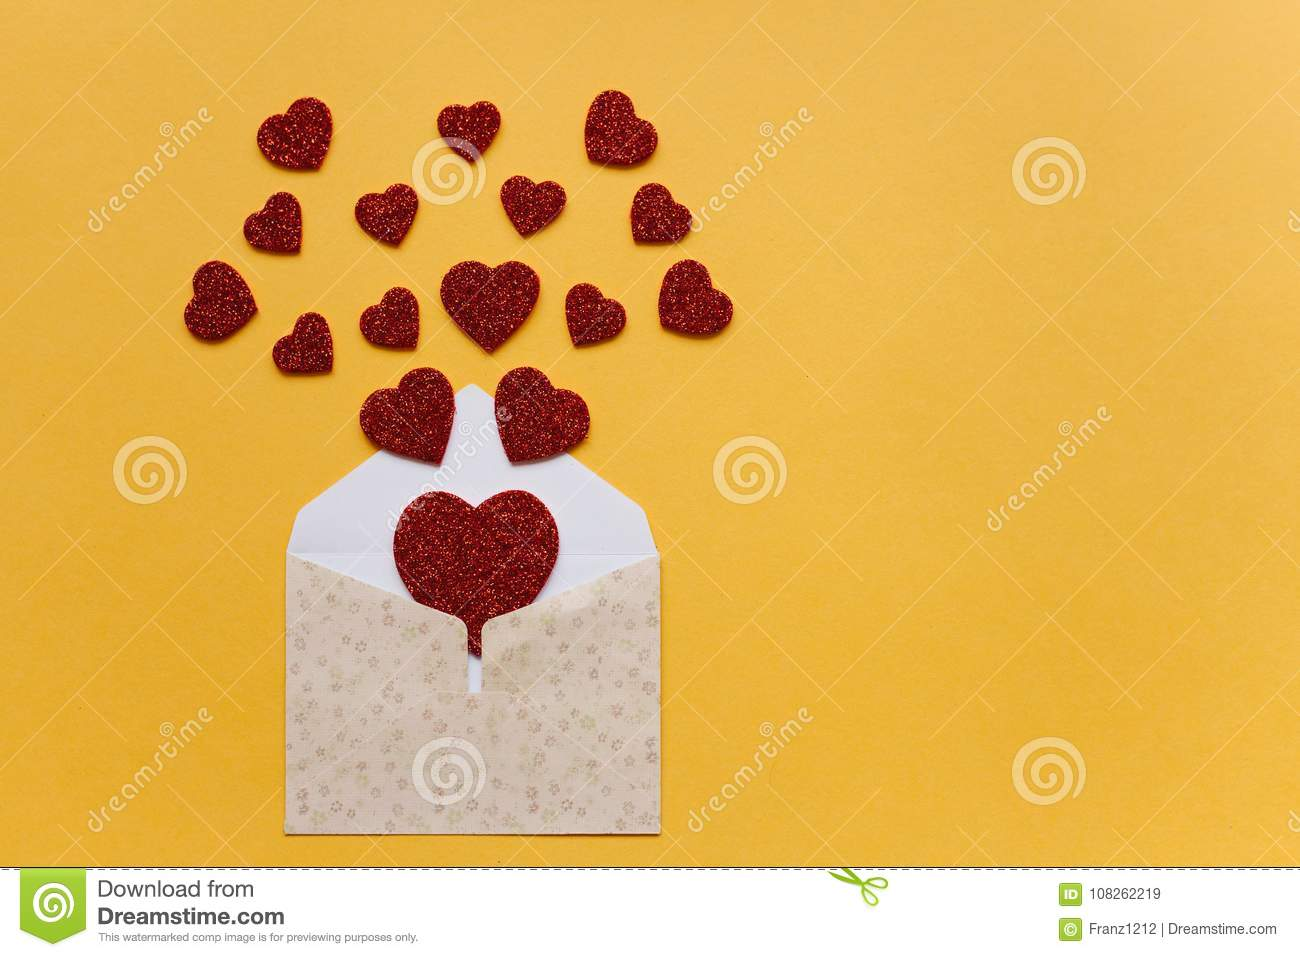 Envelope with symbols in the form of red hearts on a yellow background. Celebration.